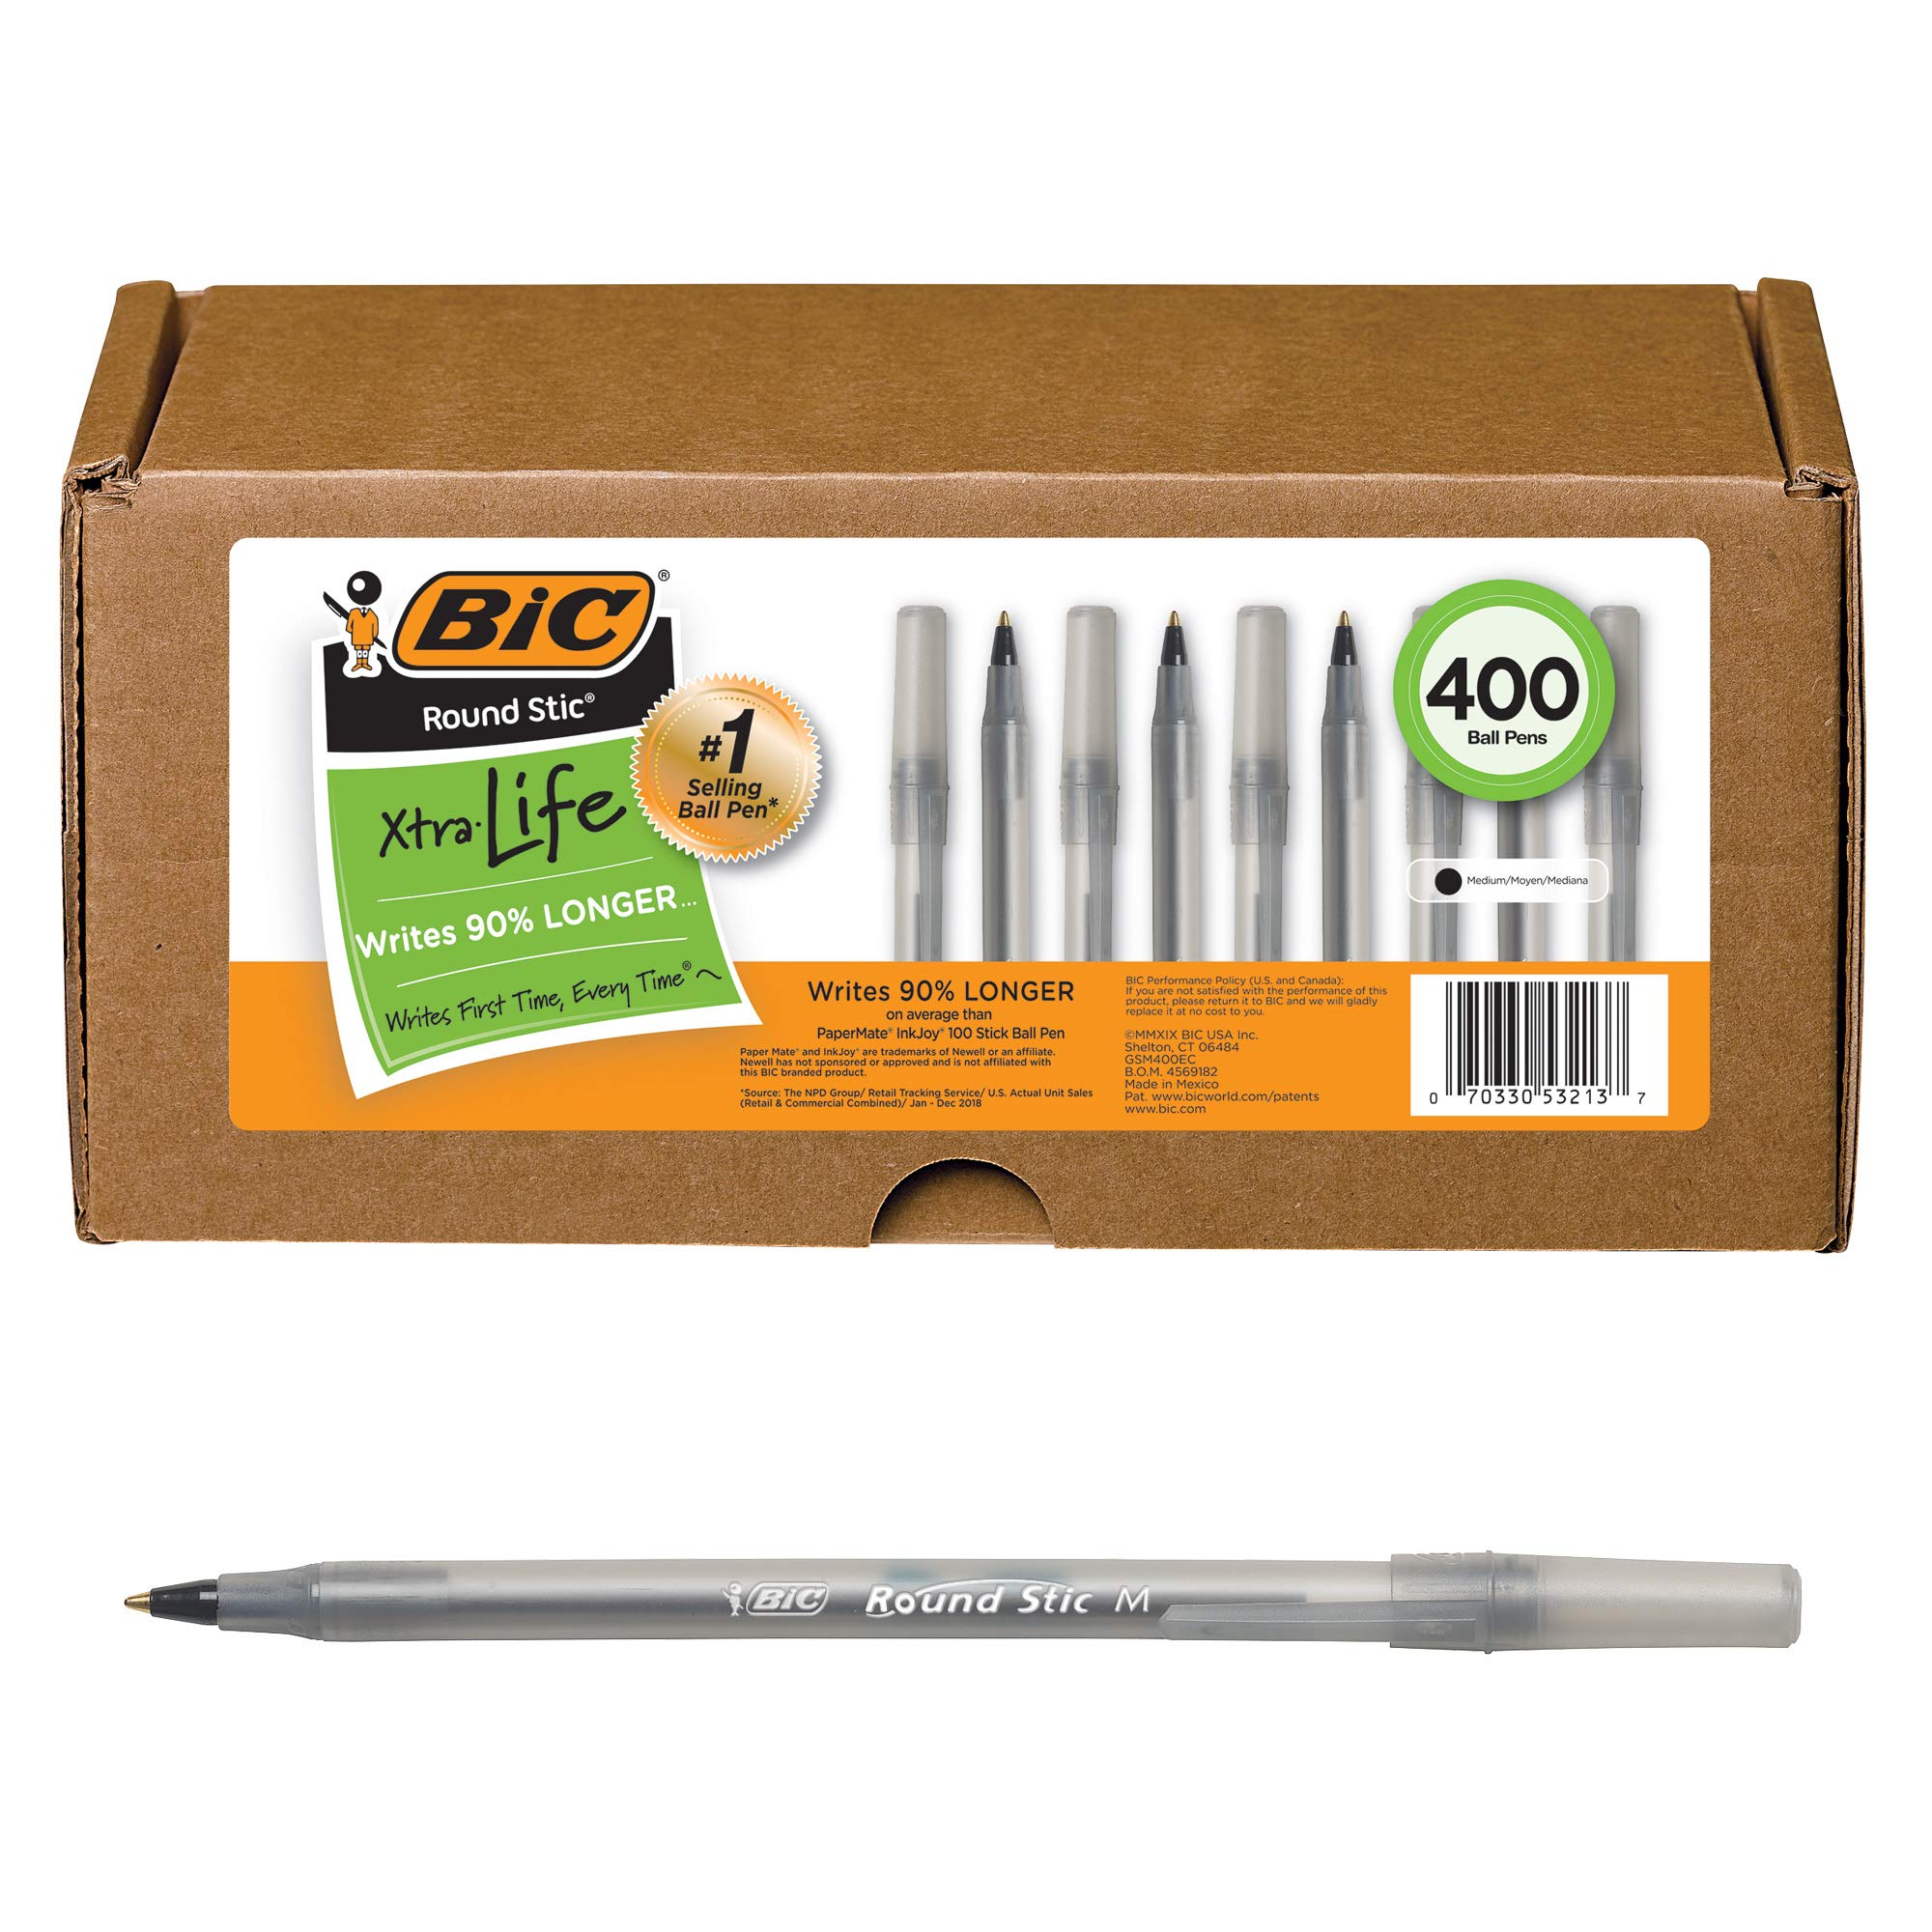 BIC Round Stic Xtra Life Ball Pen, Medium Point (1.0mm), Black, 400-Count